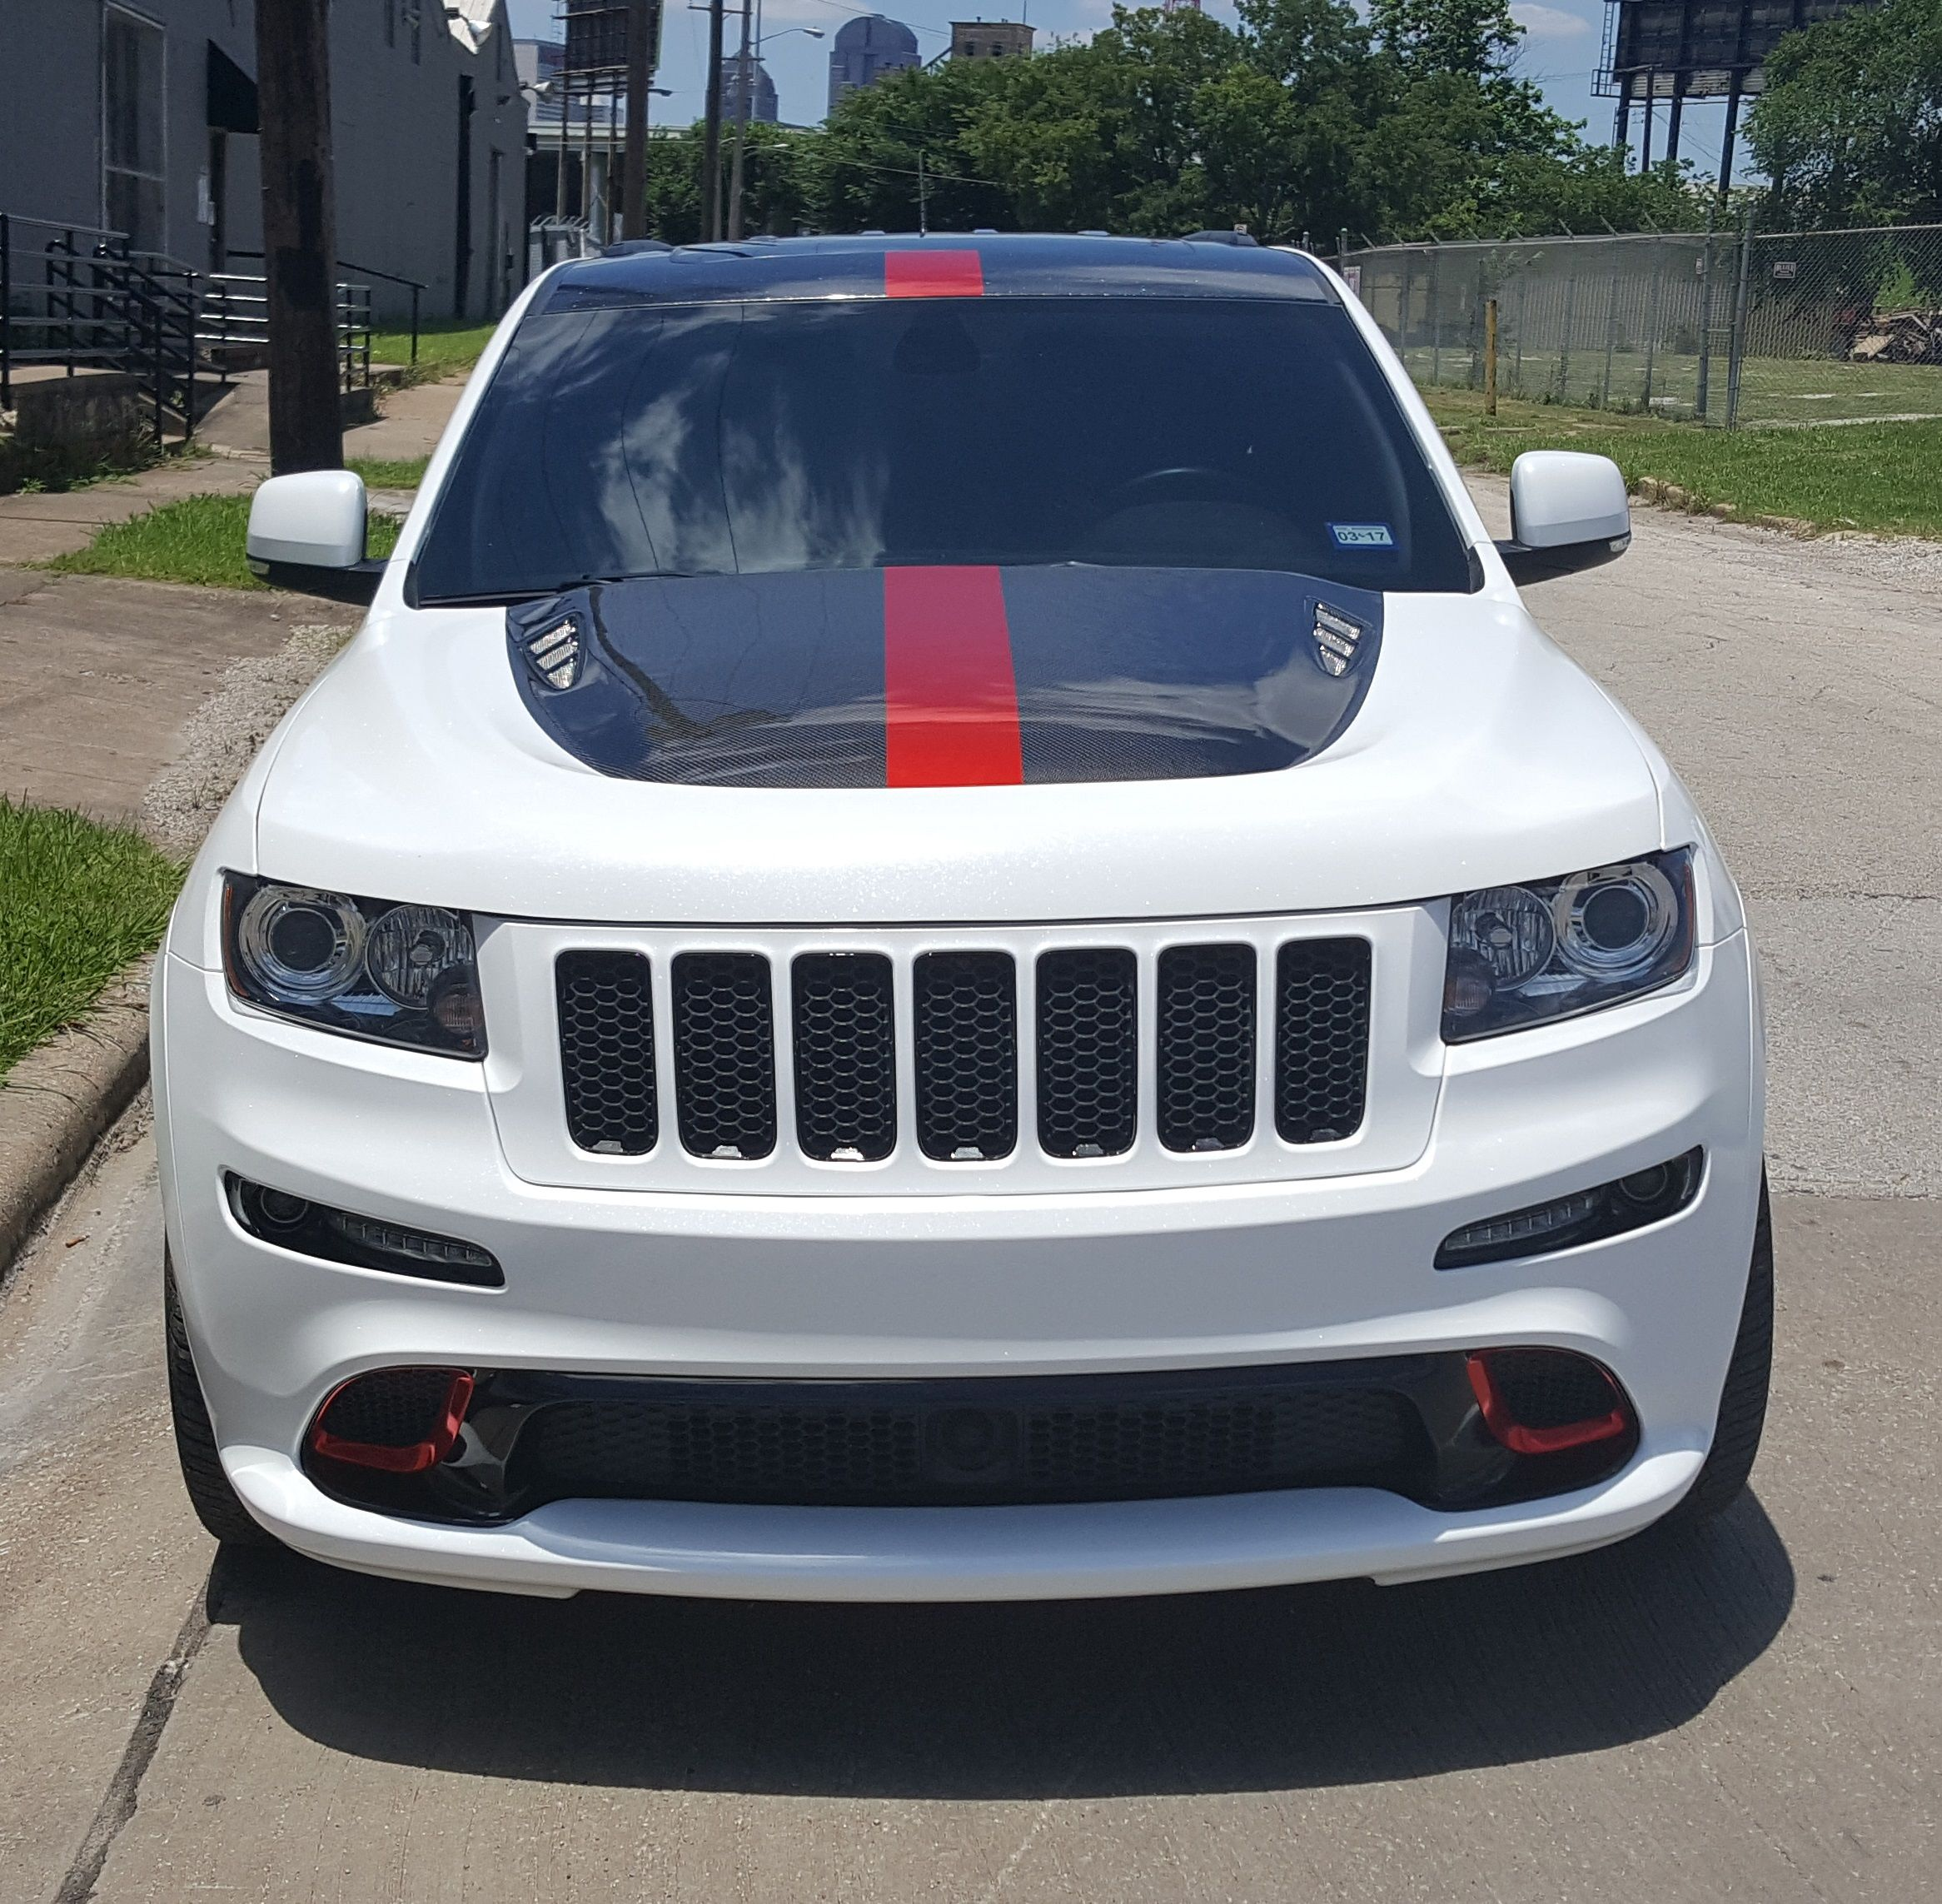 2013 Jeep Cherokee Srt8 In Diamond White With Red Chrome Accents